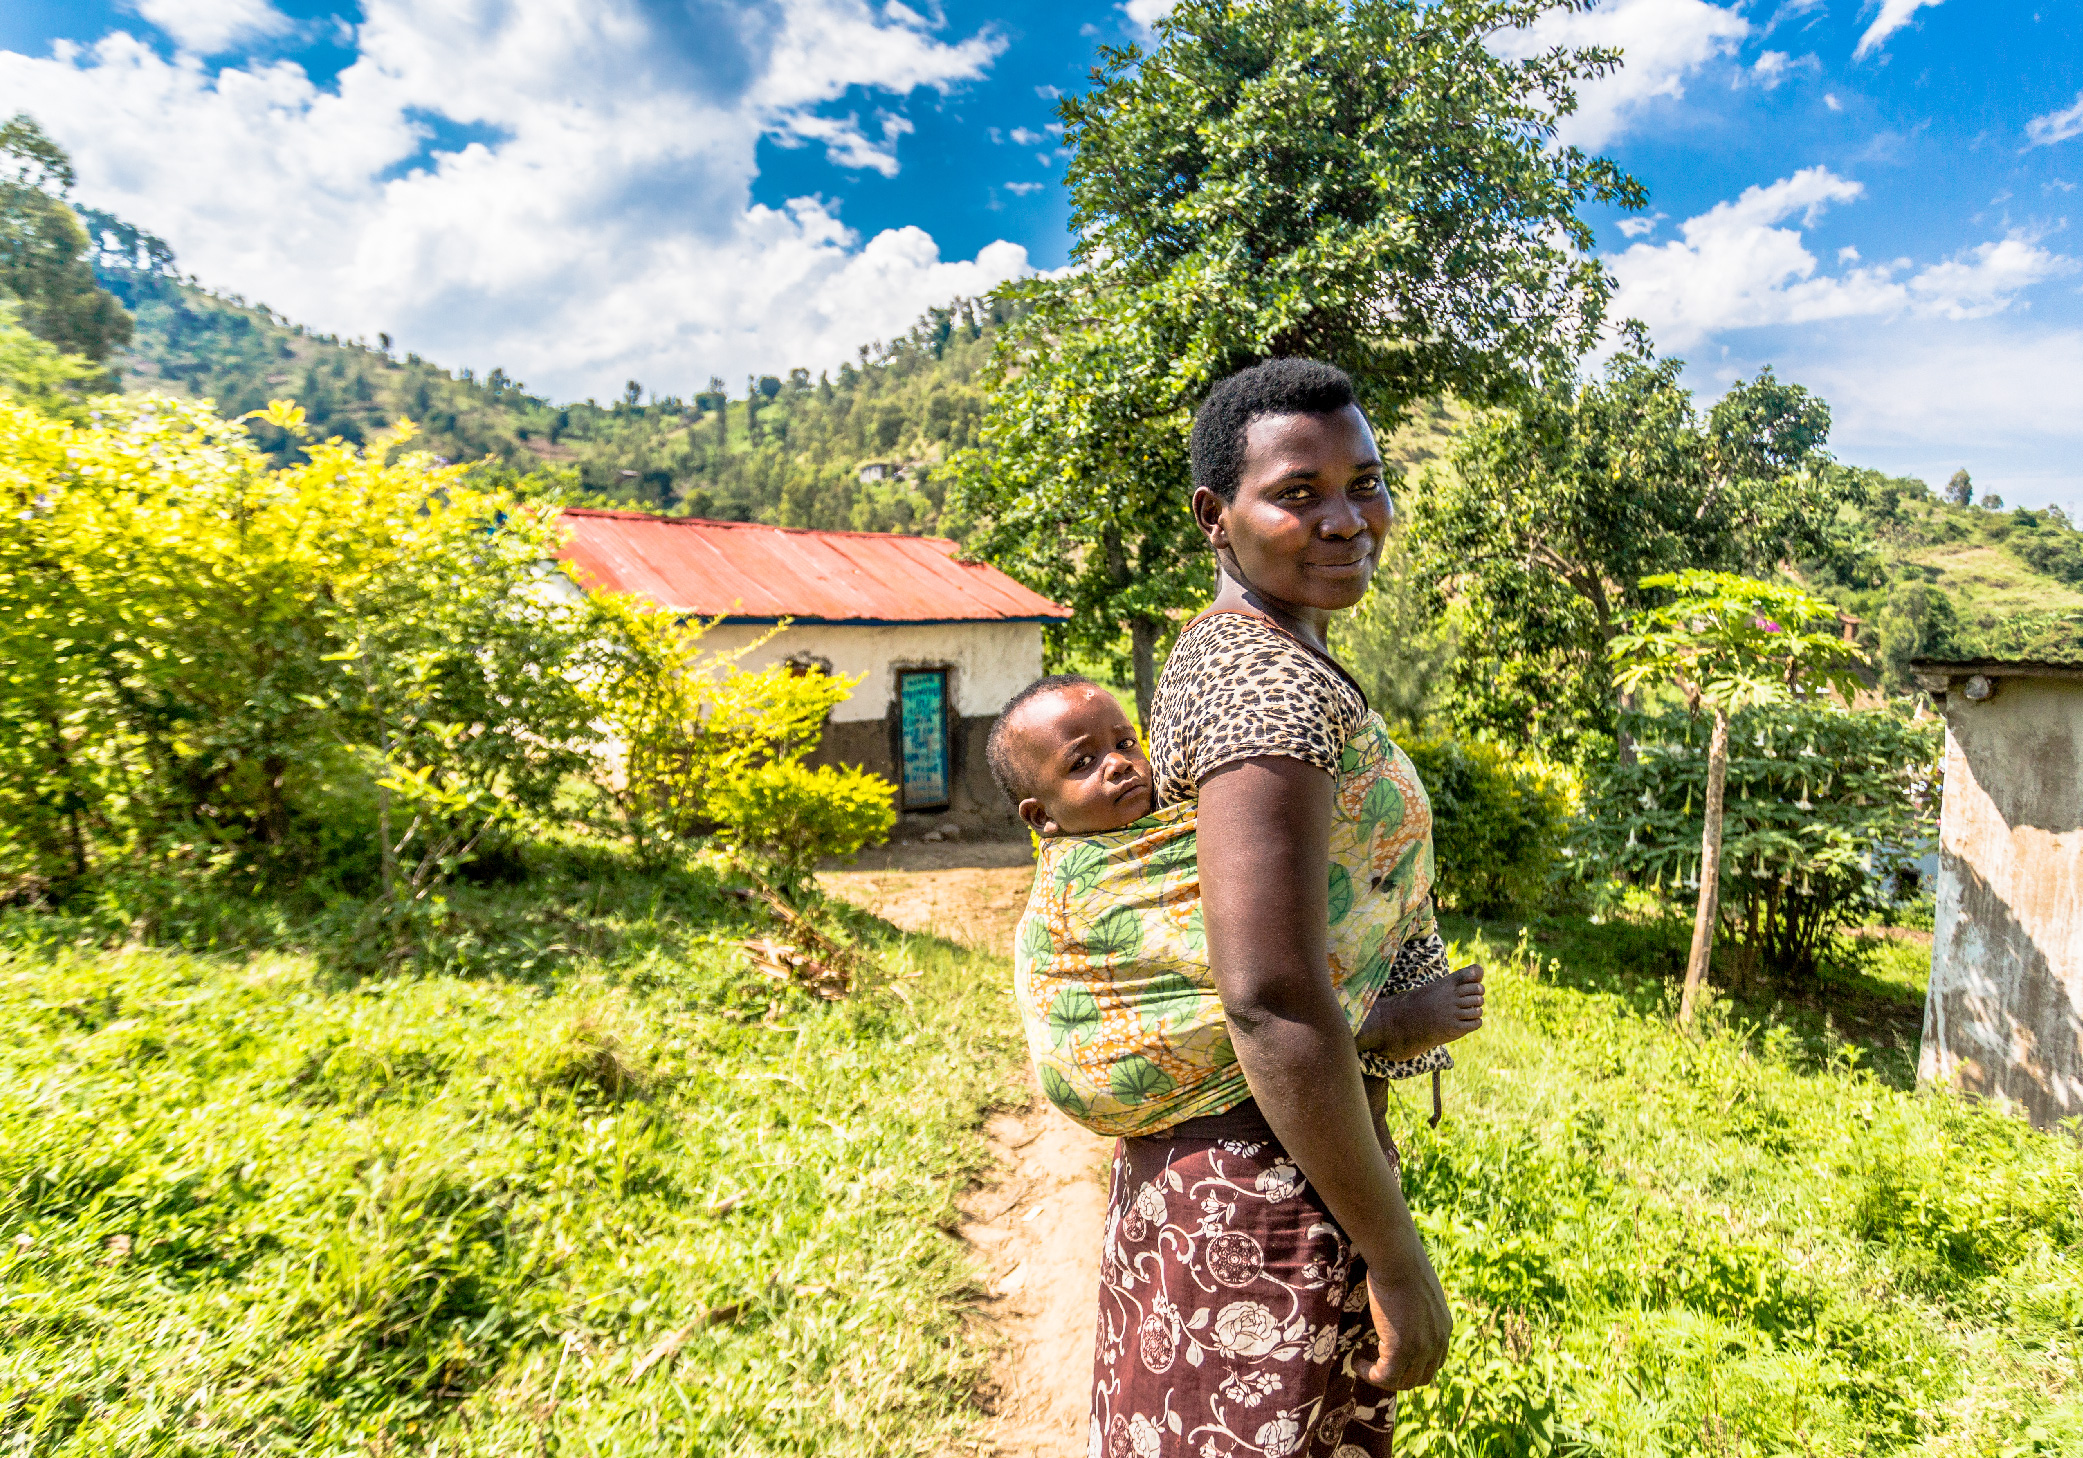 Mother and Child, Kibuye, Rwanda